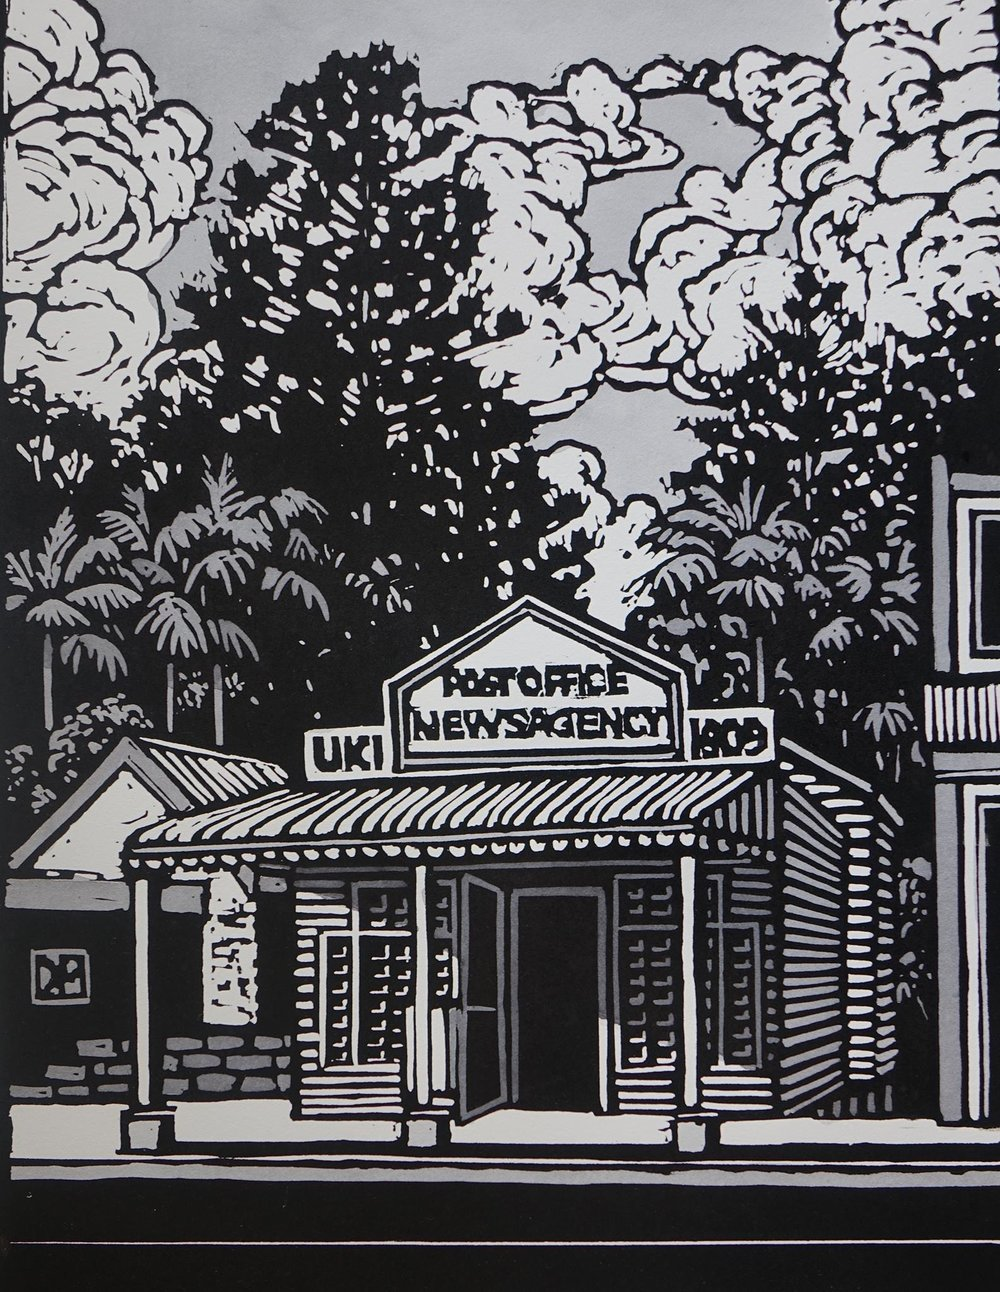 David Preston's - Painting of the Post Office. Copyright D. Preston 2018